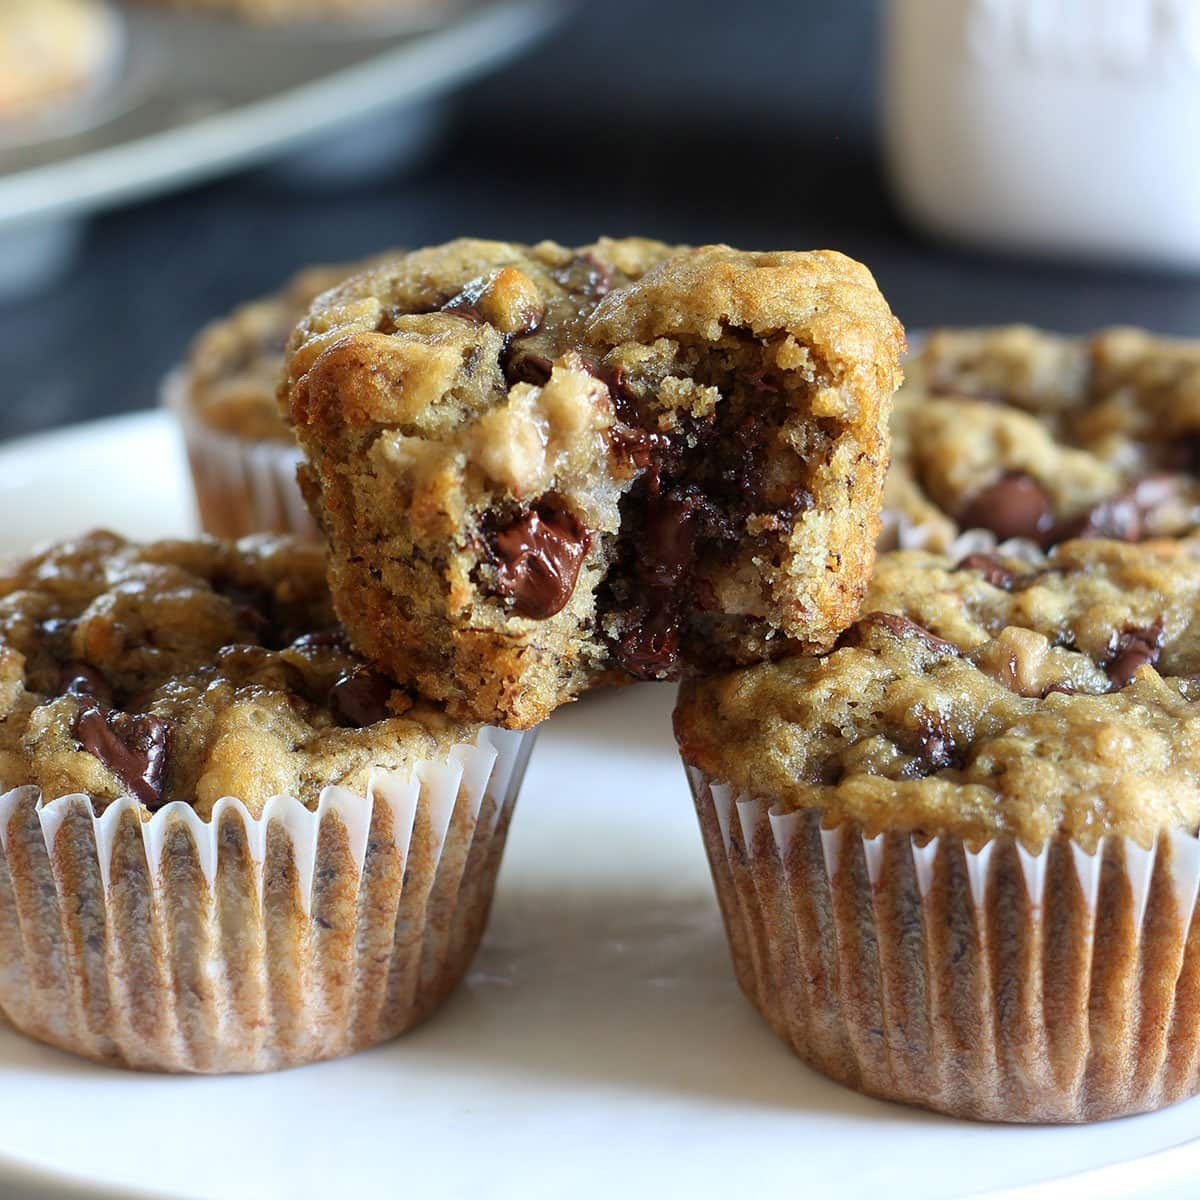 Banana Espresso Chocolate Chip Muffins are ultra tender and moist and absolutely loaded with flavor. The perfect breakfast treat!